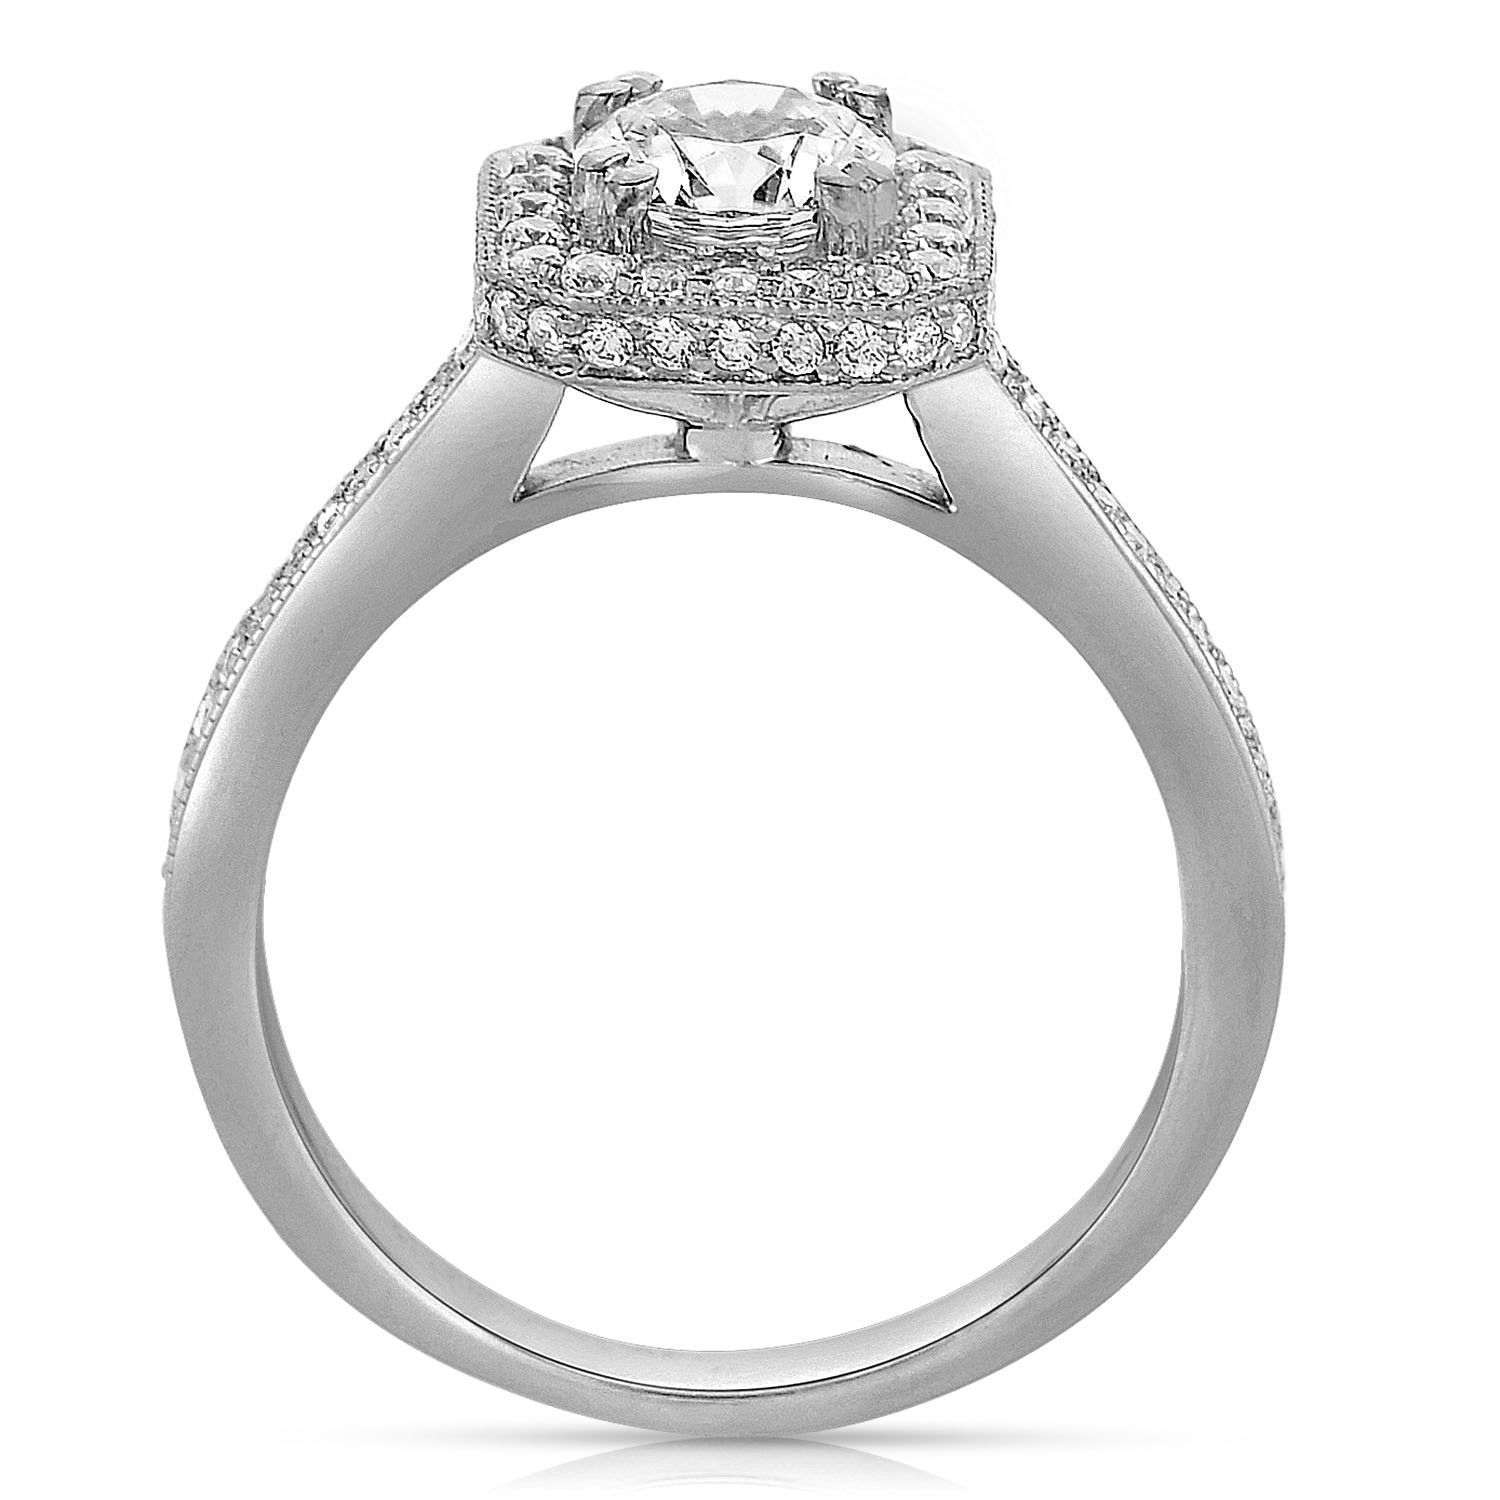 Ladies' 14K White Gold Diamond Engagement Ring (View 5 of 15)